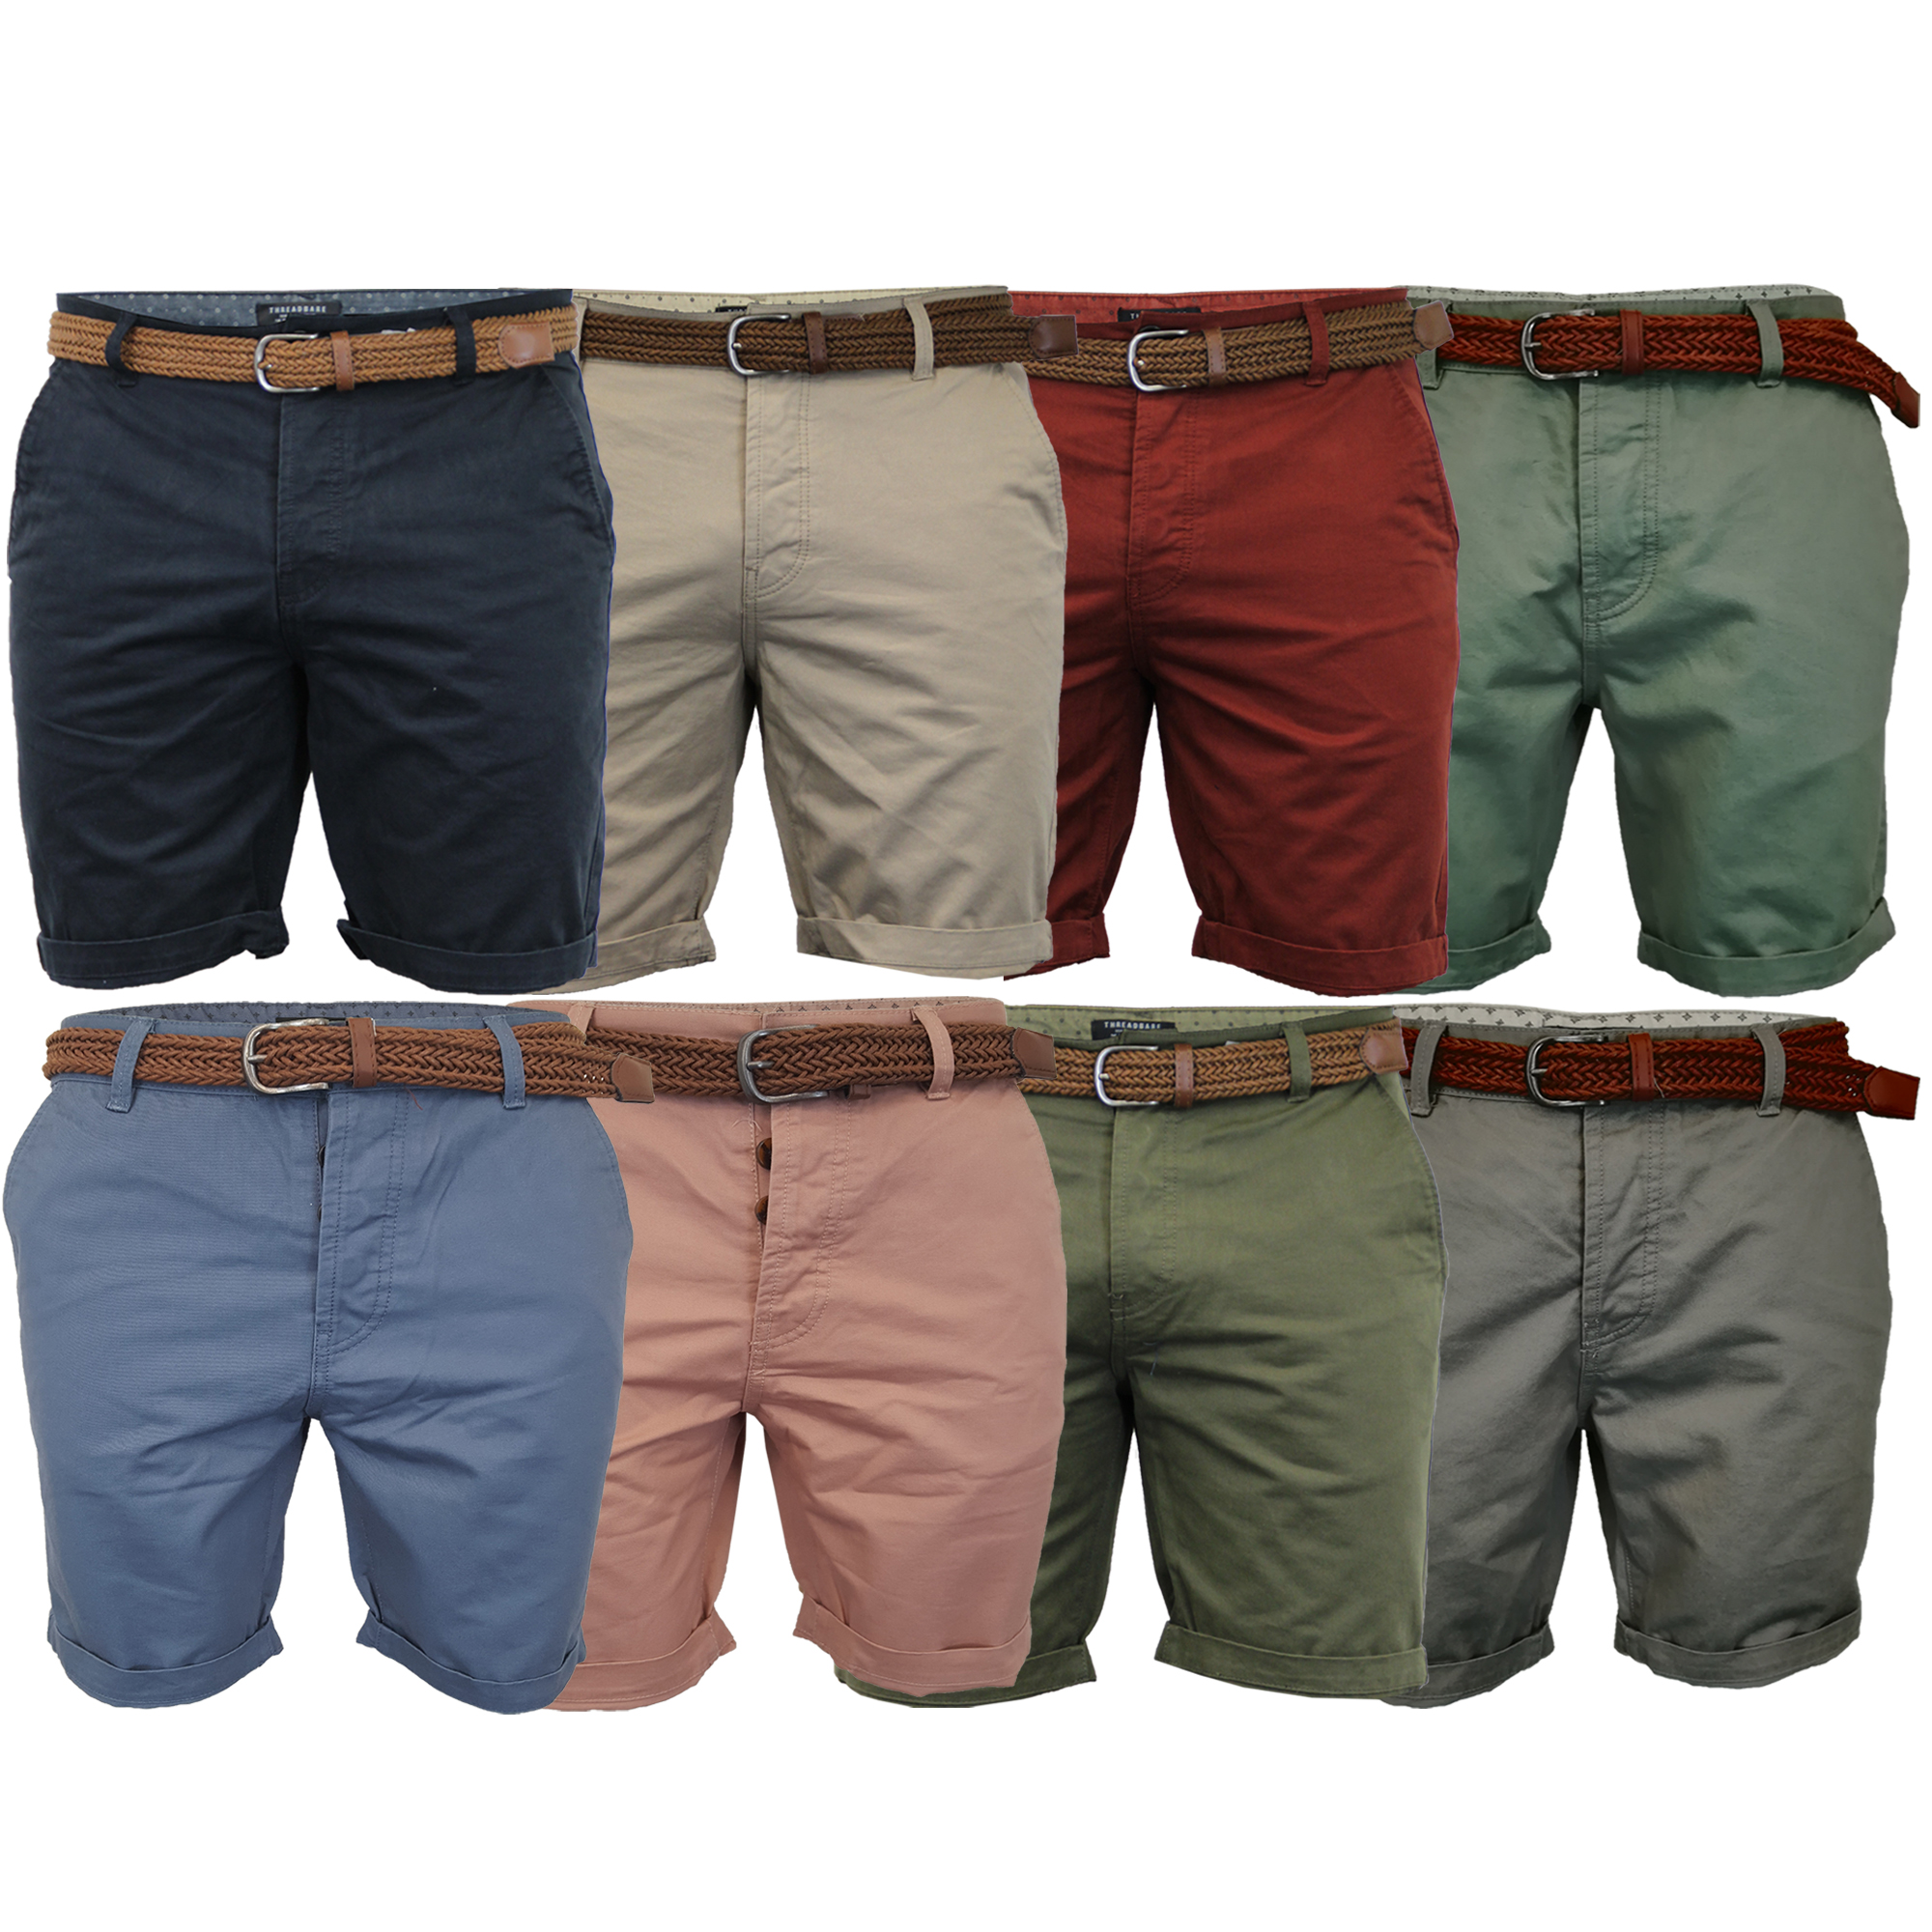 Mens Summer Threadbare Casual Cotton Knee Length Chino Shorts Belted Oxford 022